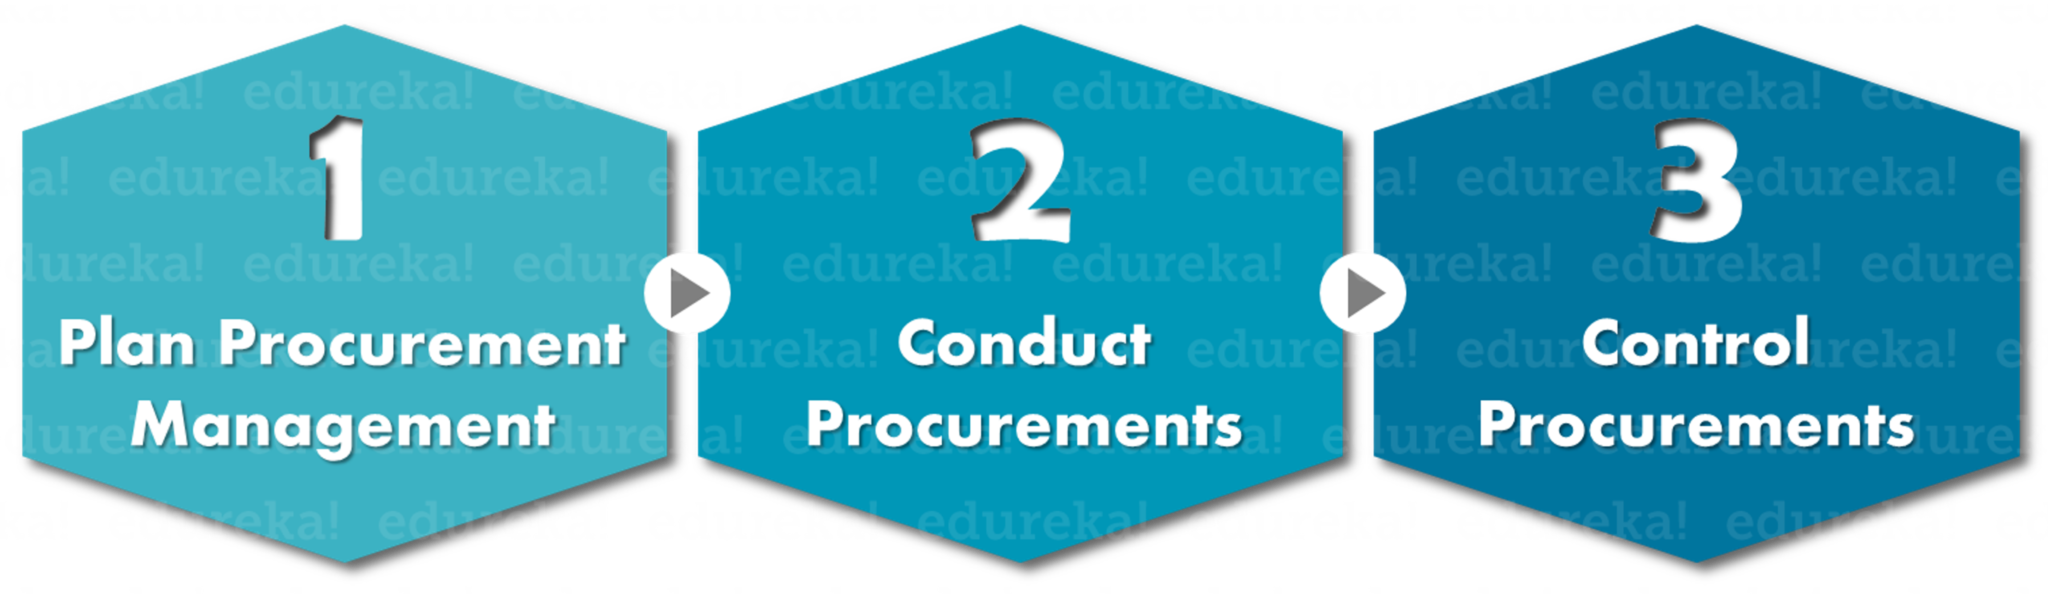 Processes - Project Procurement Management - Edureks